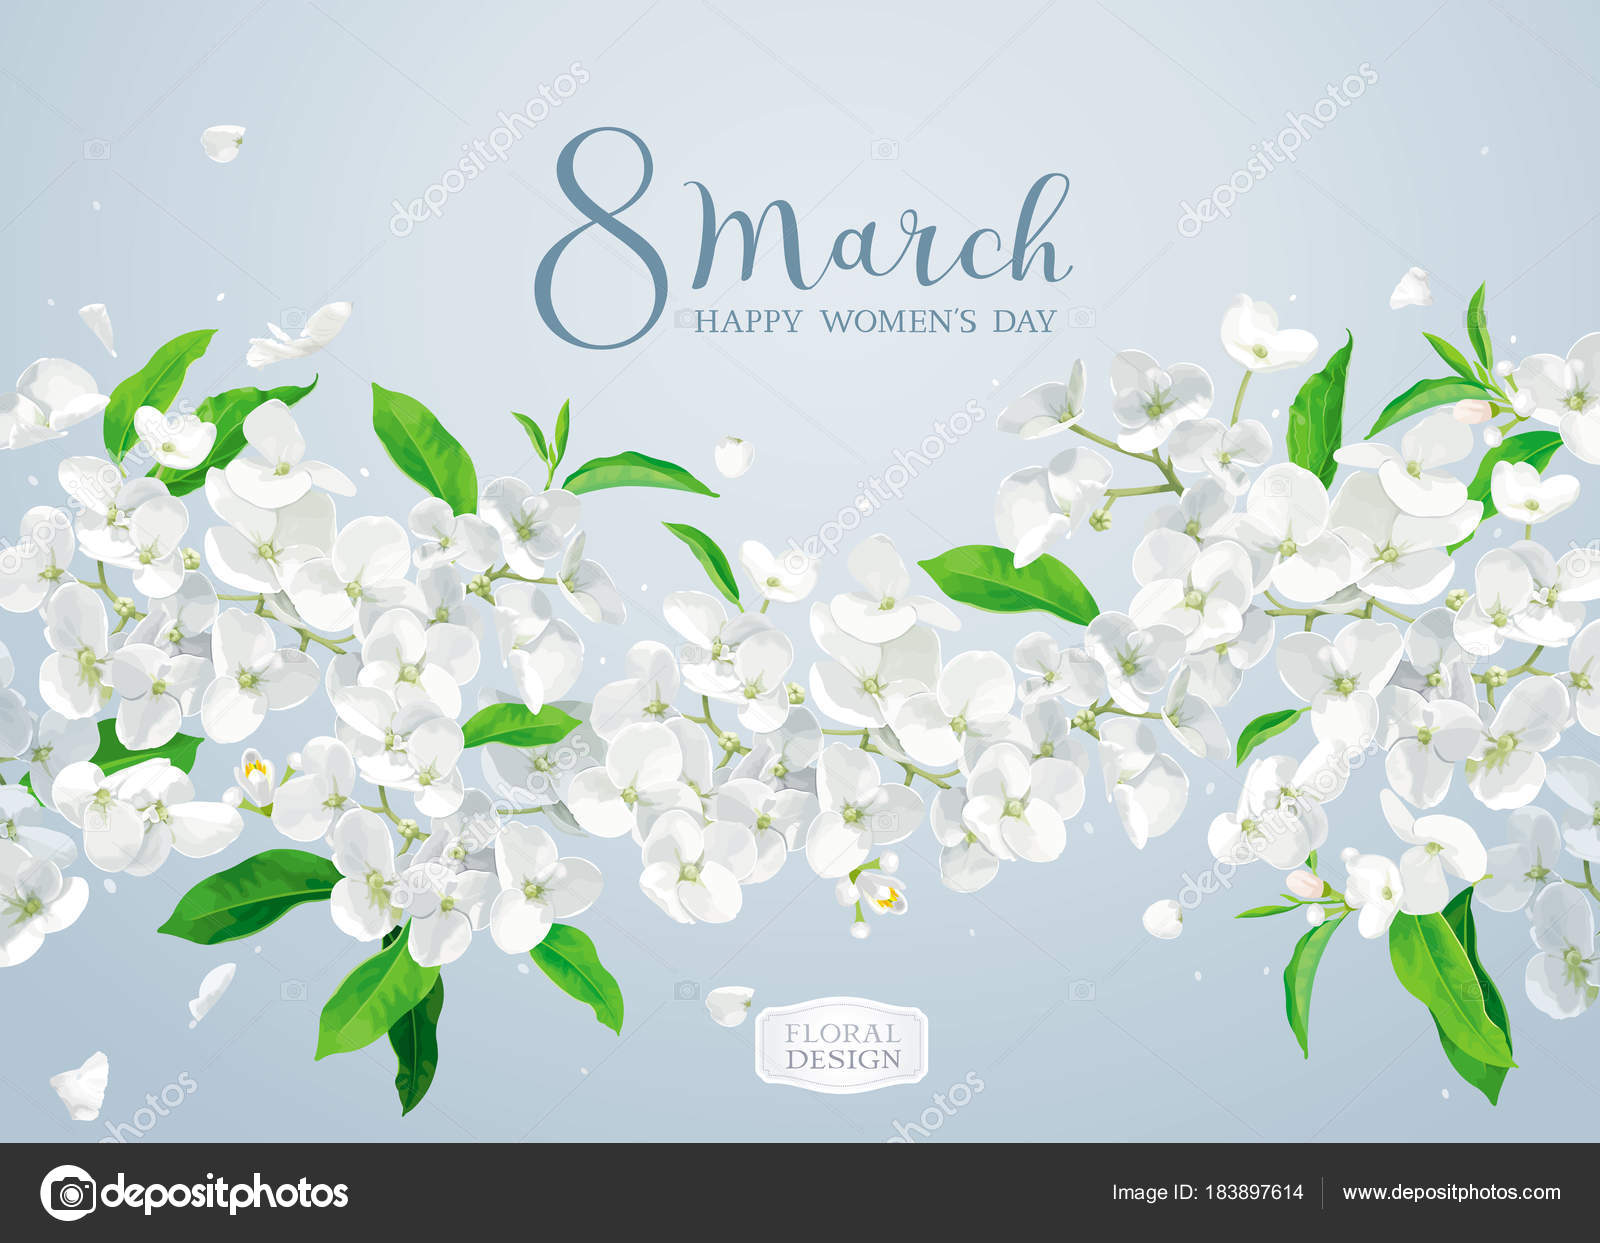 Apple blossom vector greeting card stock vector lisashu 183897614 modern floral vector art luxurious spring apple blossom greeting card in watercolor style for 8 march wedding valentines day mothers day sales and kristyandbryce Images